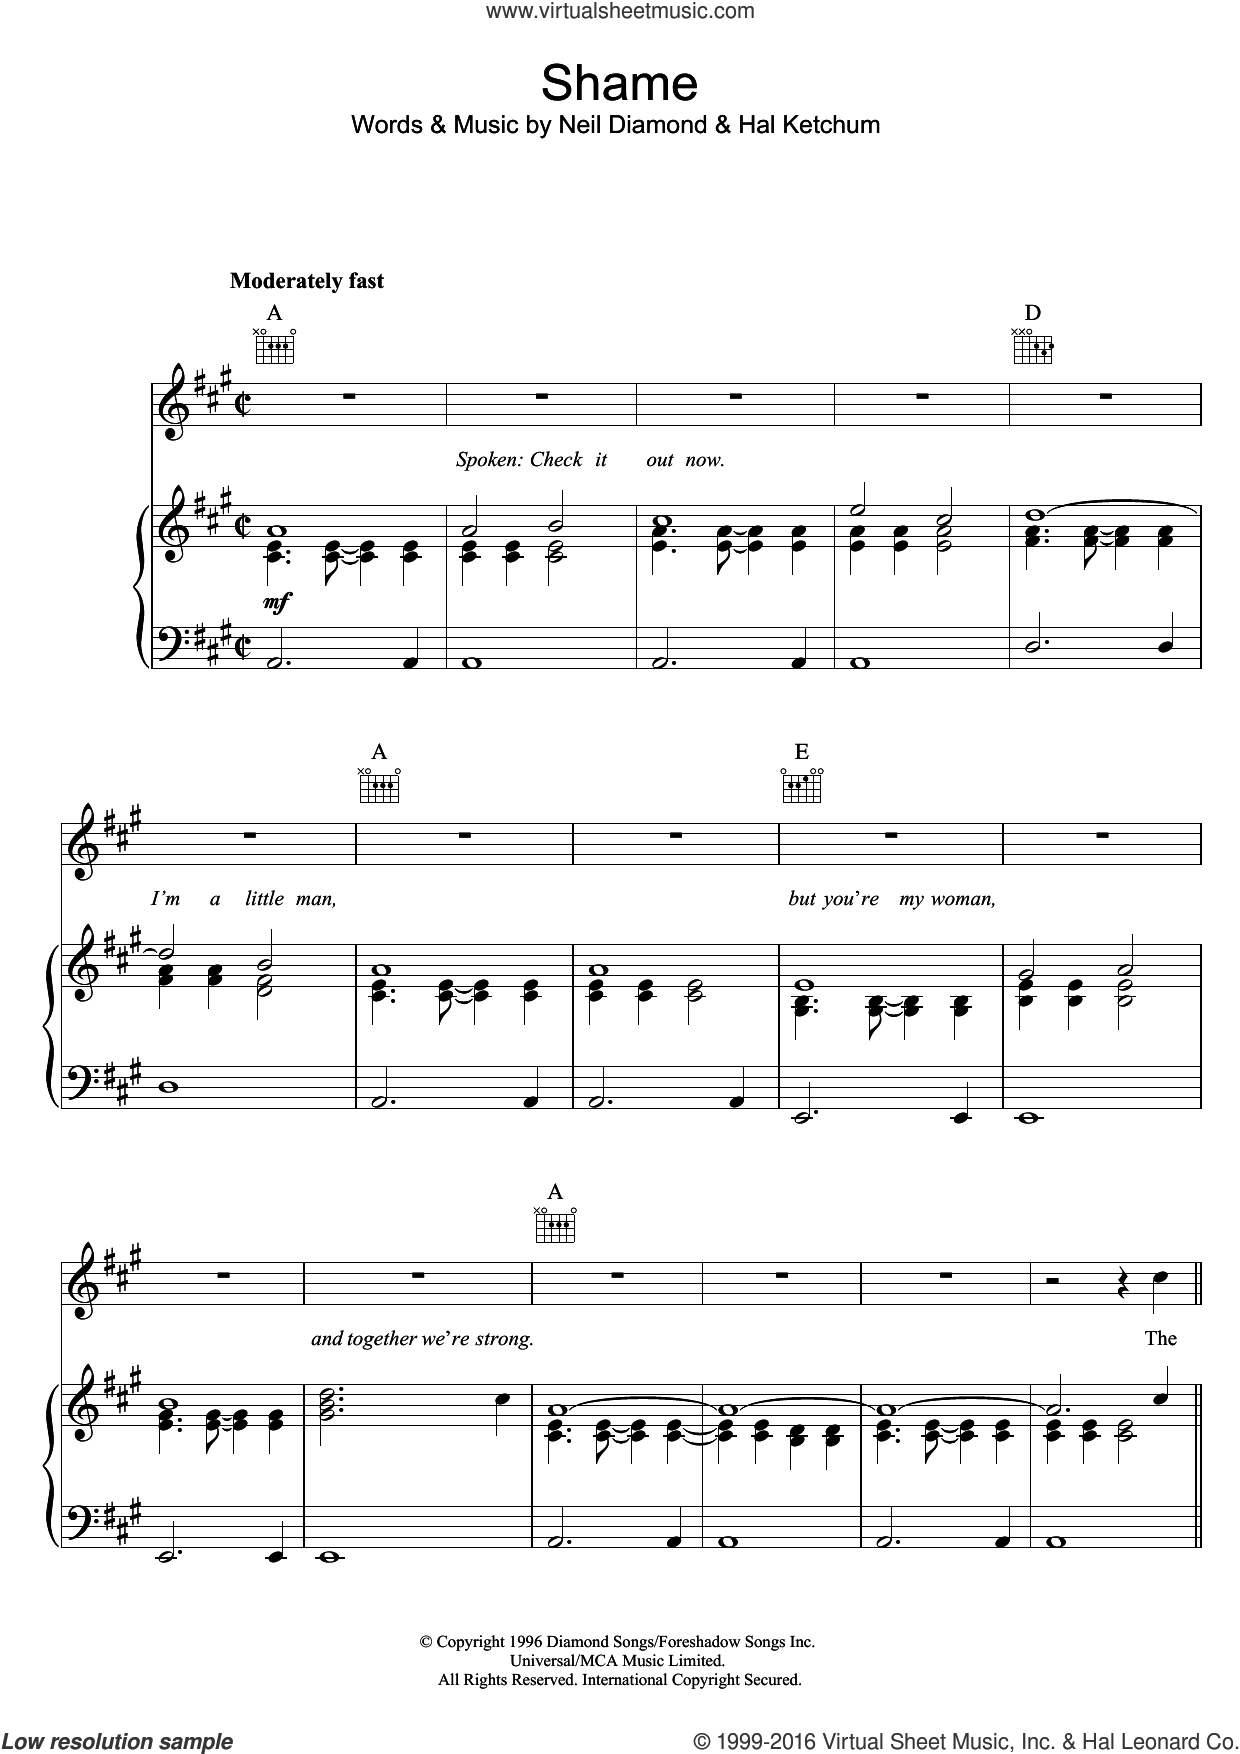 Shame sheet music for voice, piano or guitar by Neil Diamond and Hal Ketchum, intermediate